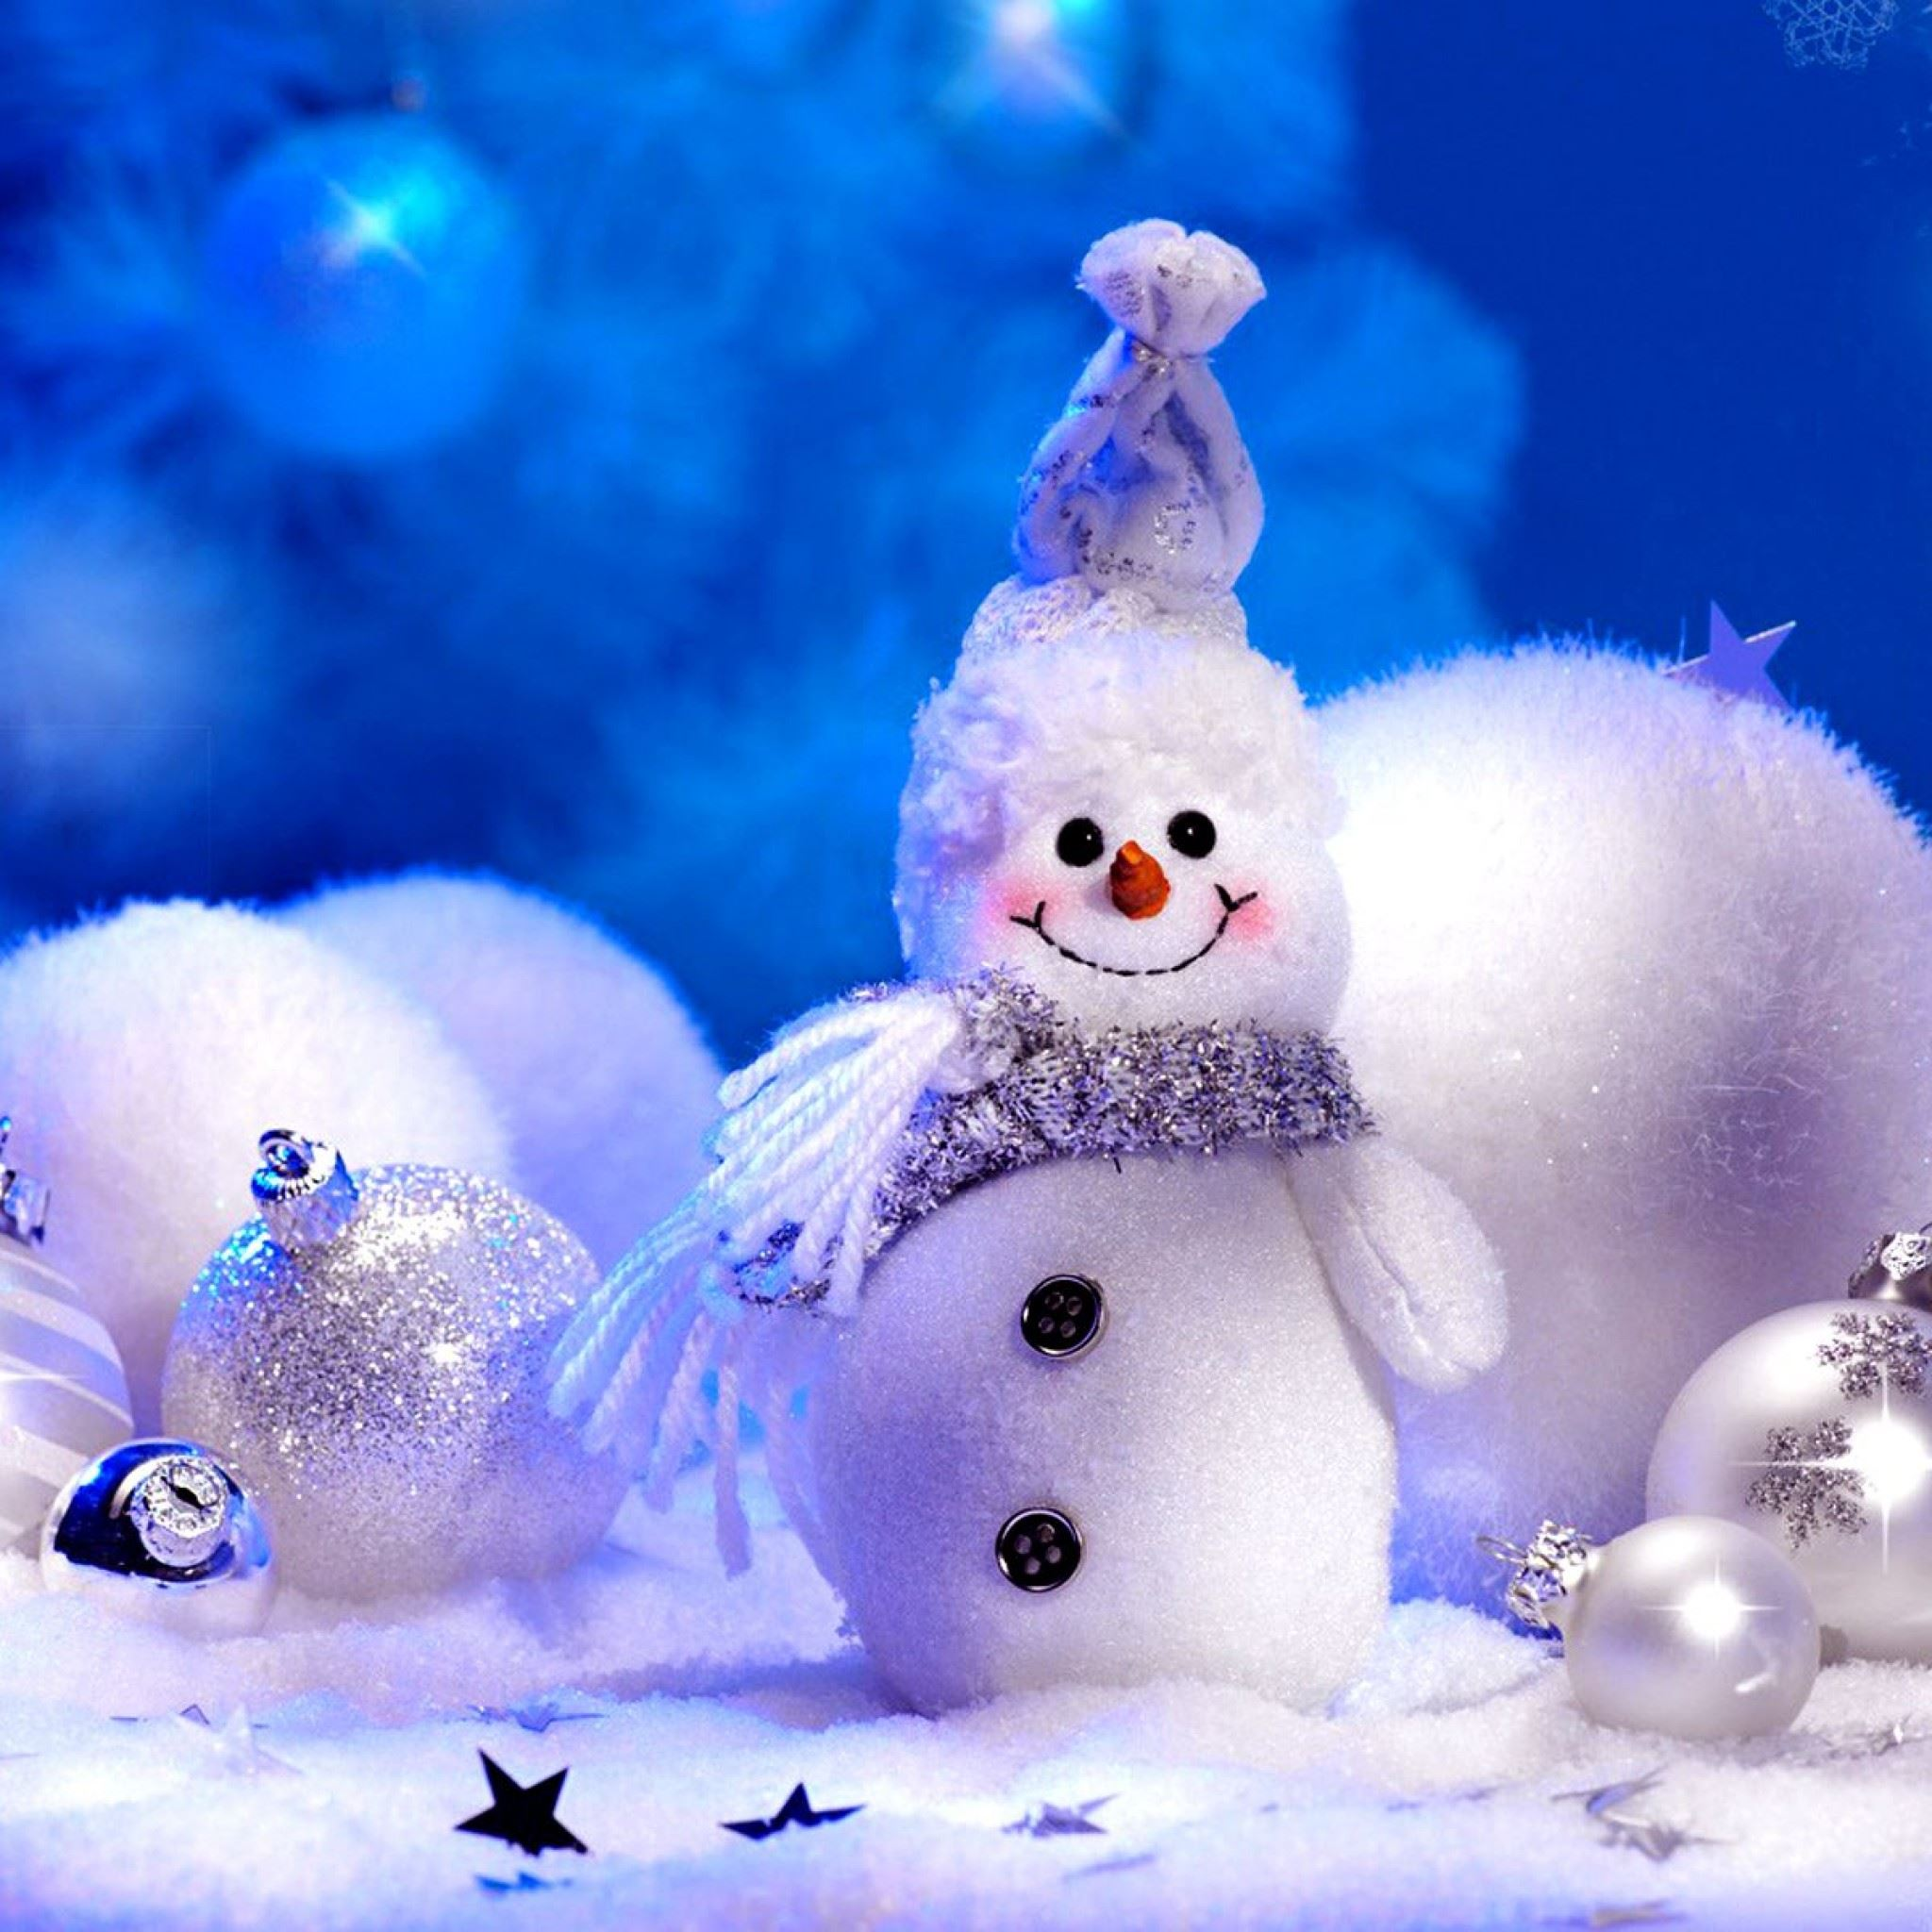 Happy New Year Merry Christmas iPad Air wallpaper. DOWNLOAD